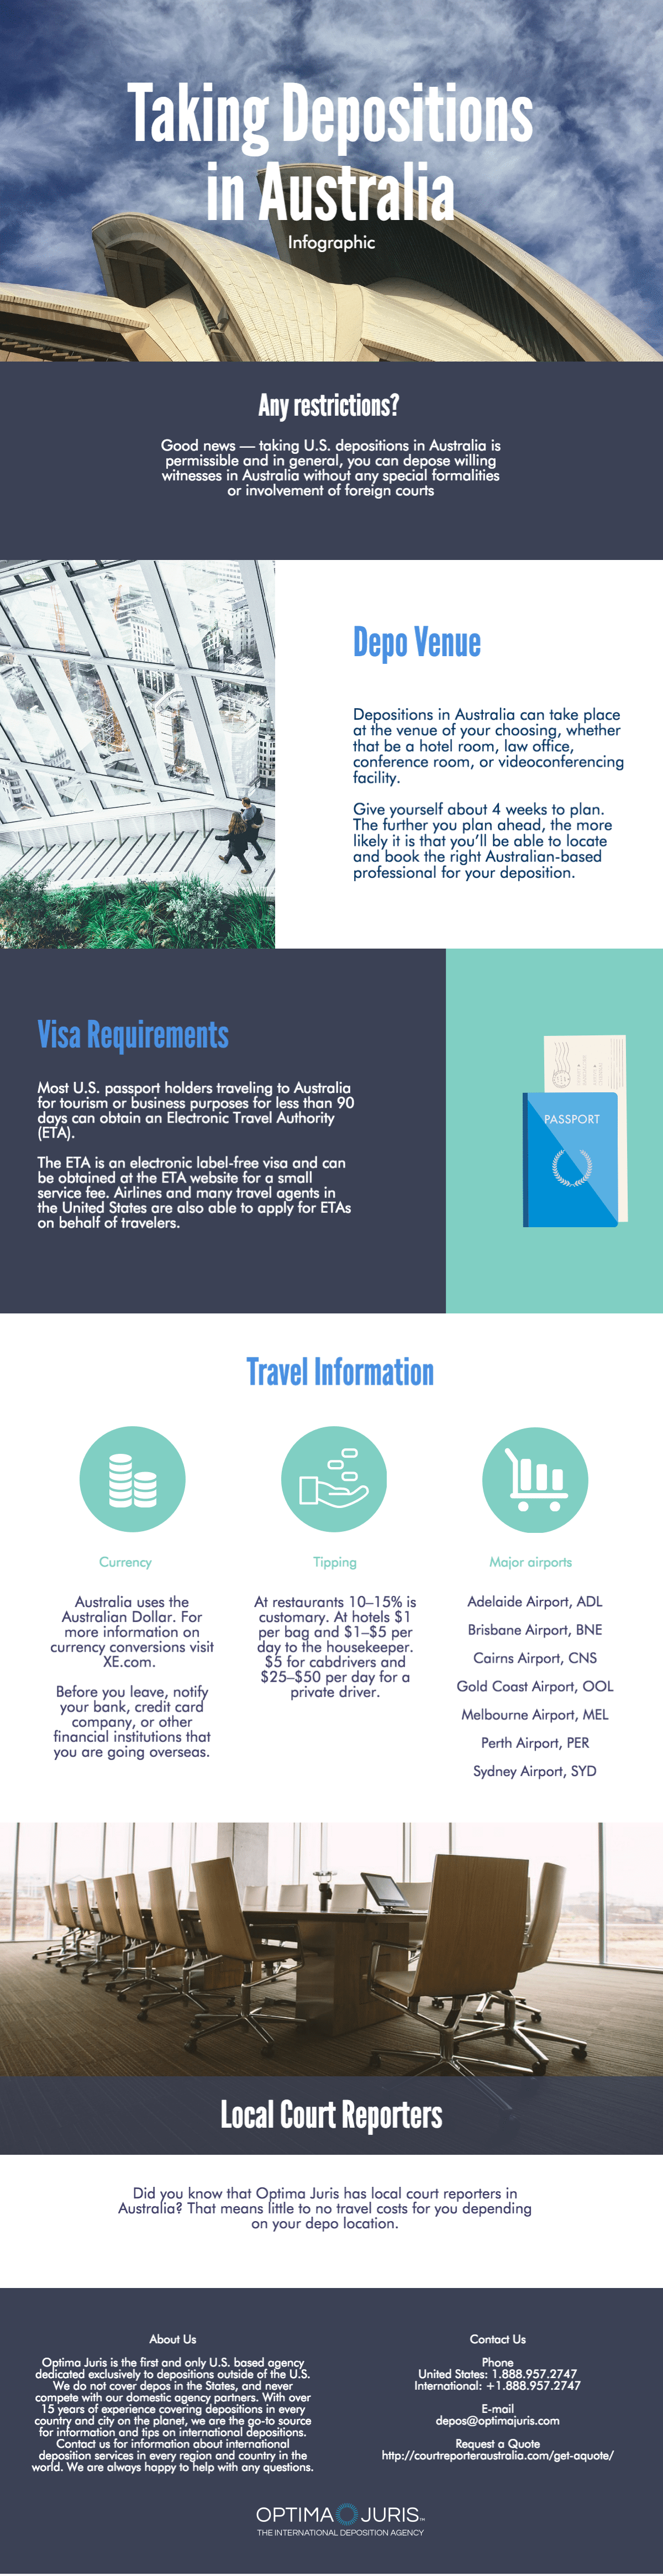 Infographic Taking Depositions in Australia